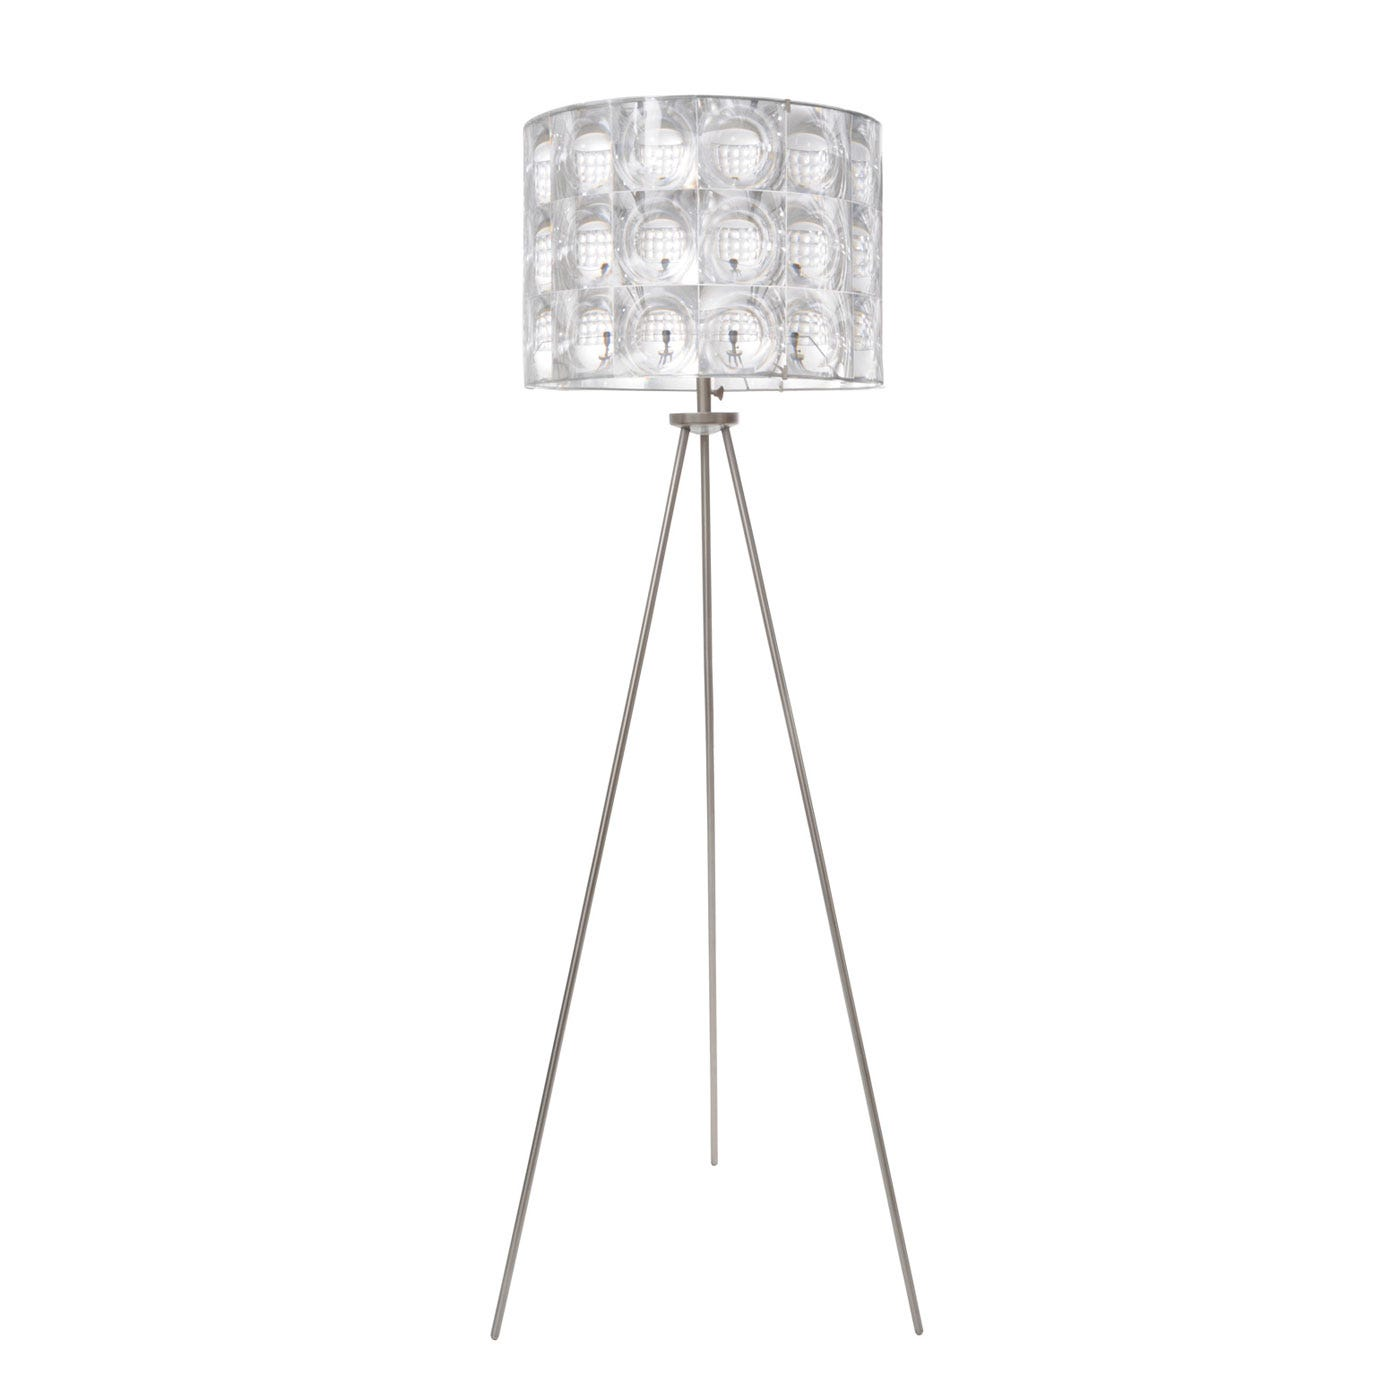 Innermost lighthouse xl shade with tripod base floor lamp lighthouse xl shade with tripod base floor lamp discontinued mozeypictures Choice Image